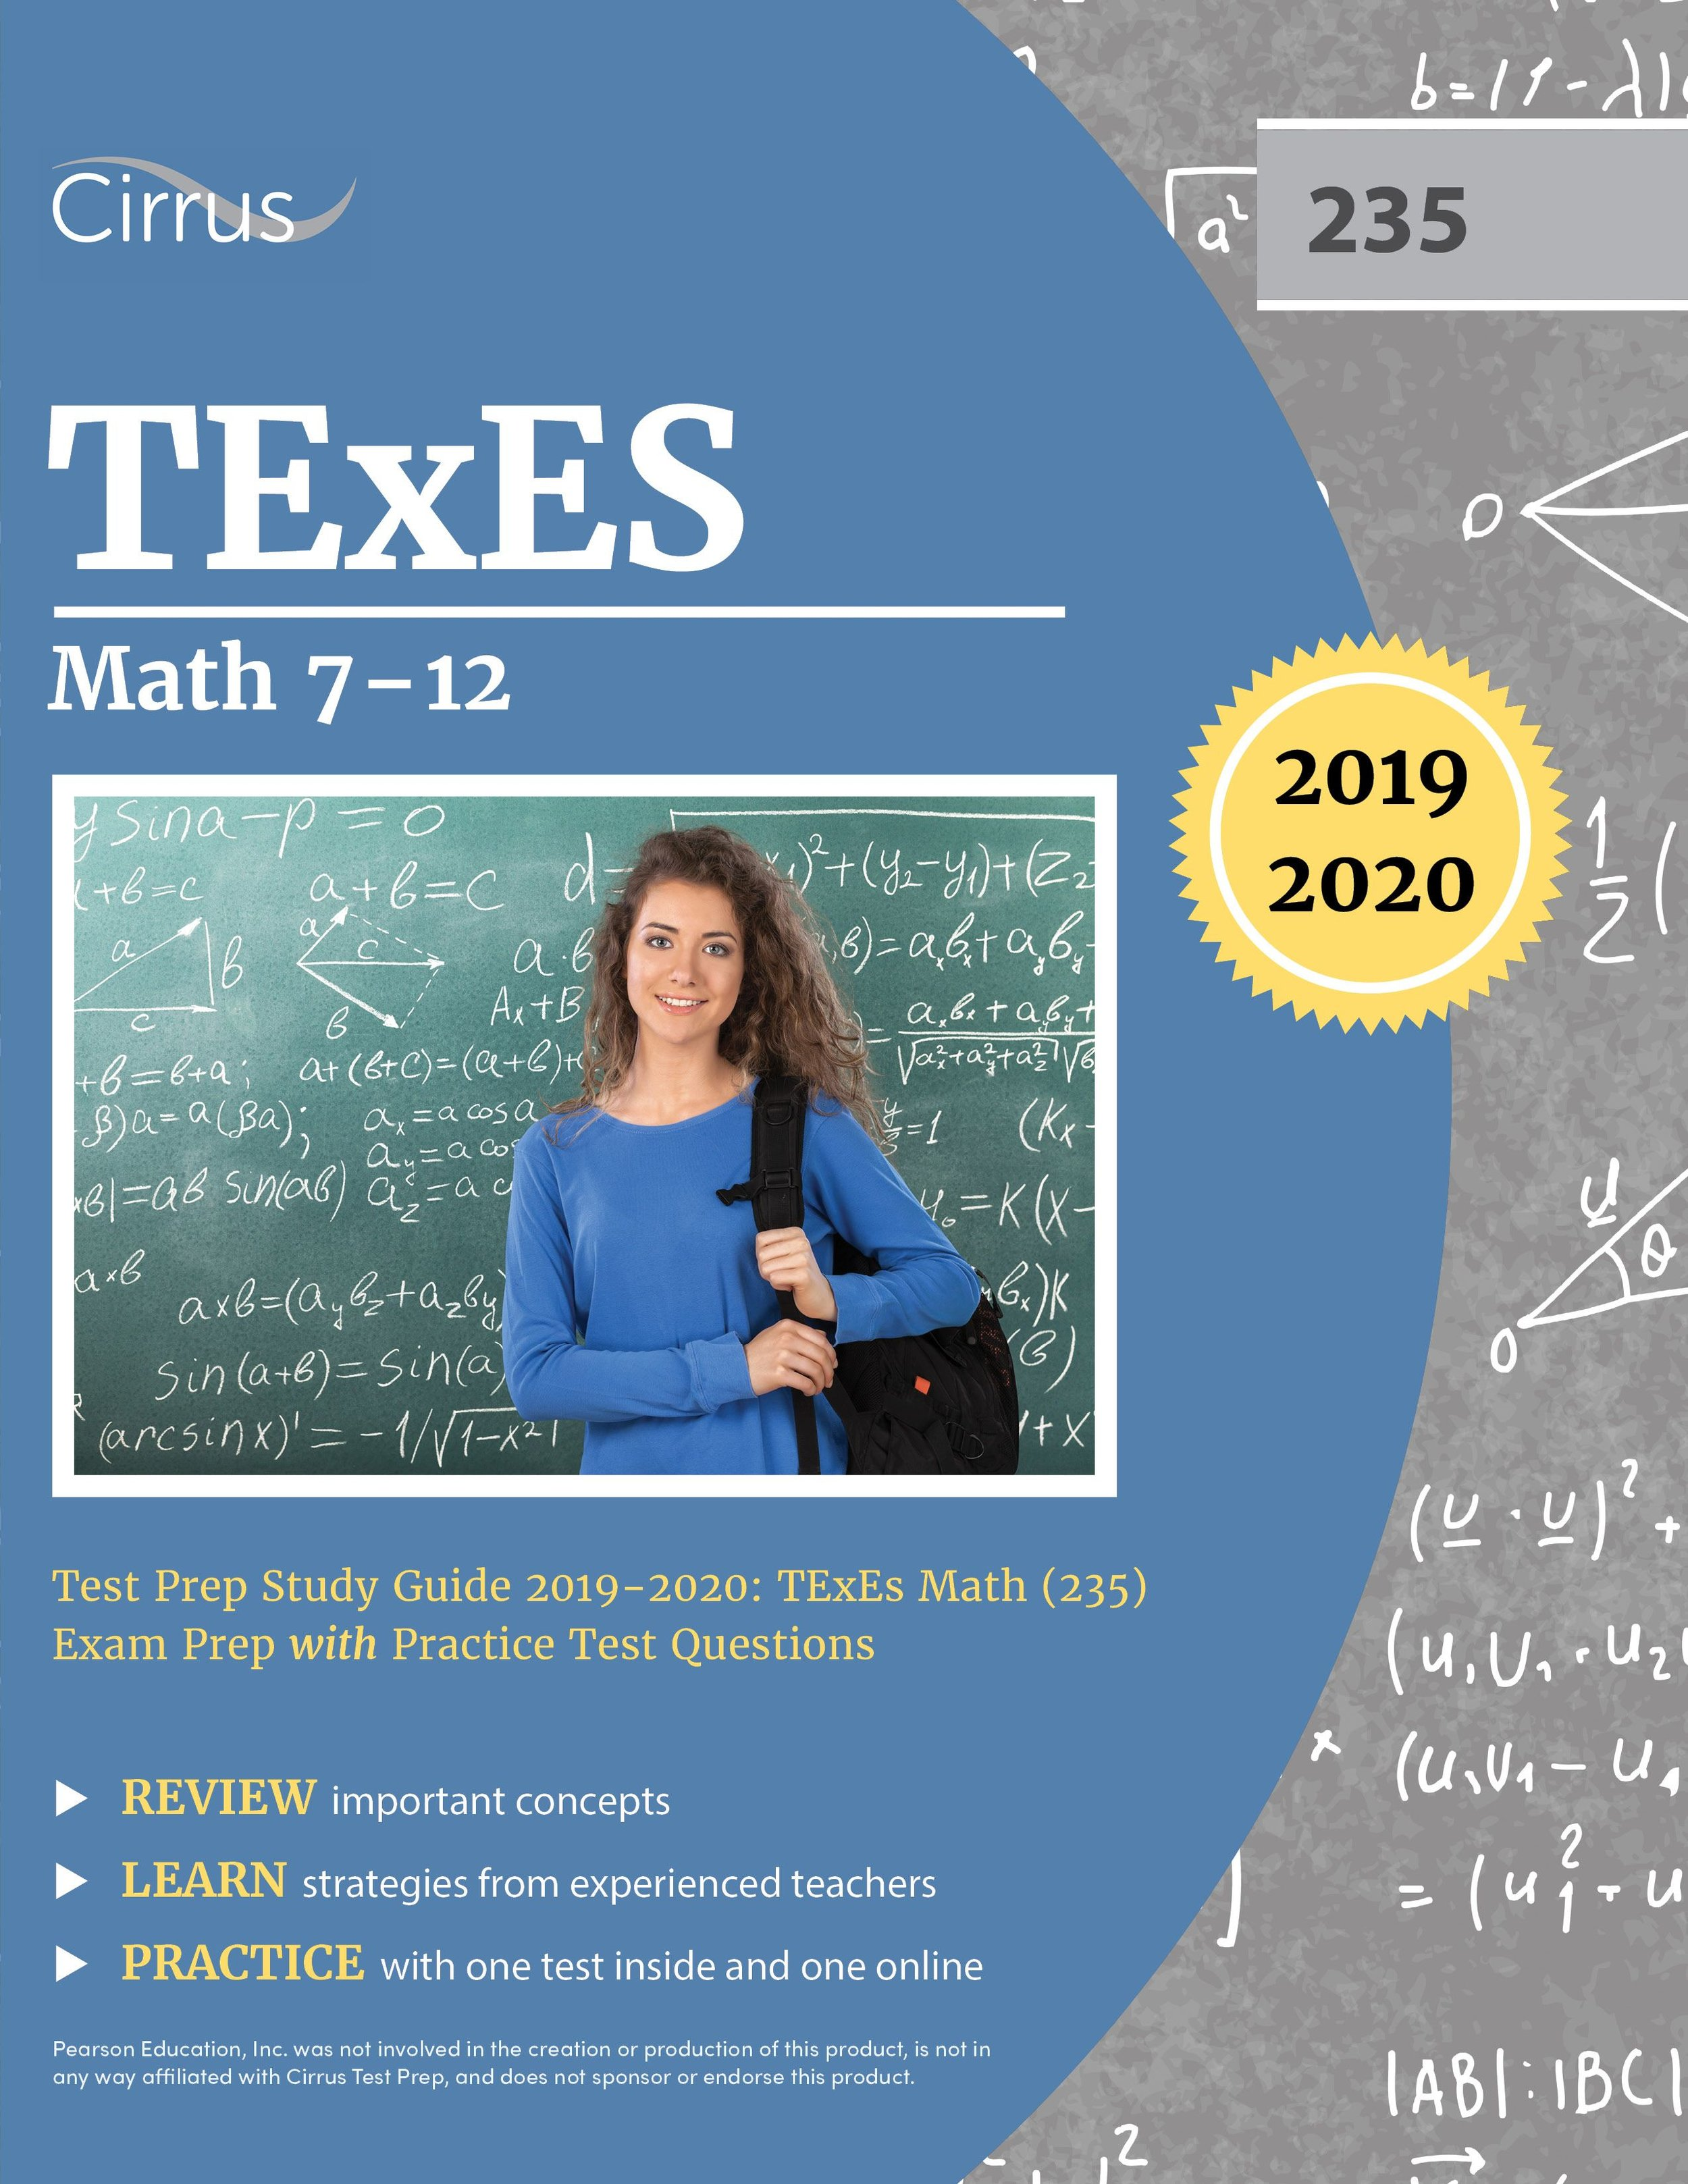 TExES_math_cover_website-compressor.jpg